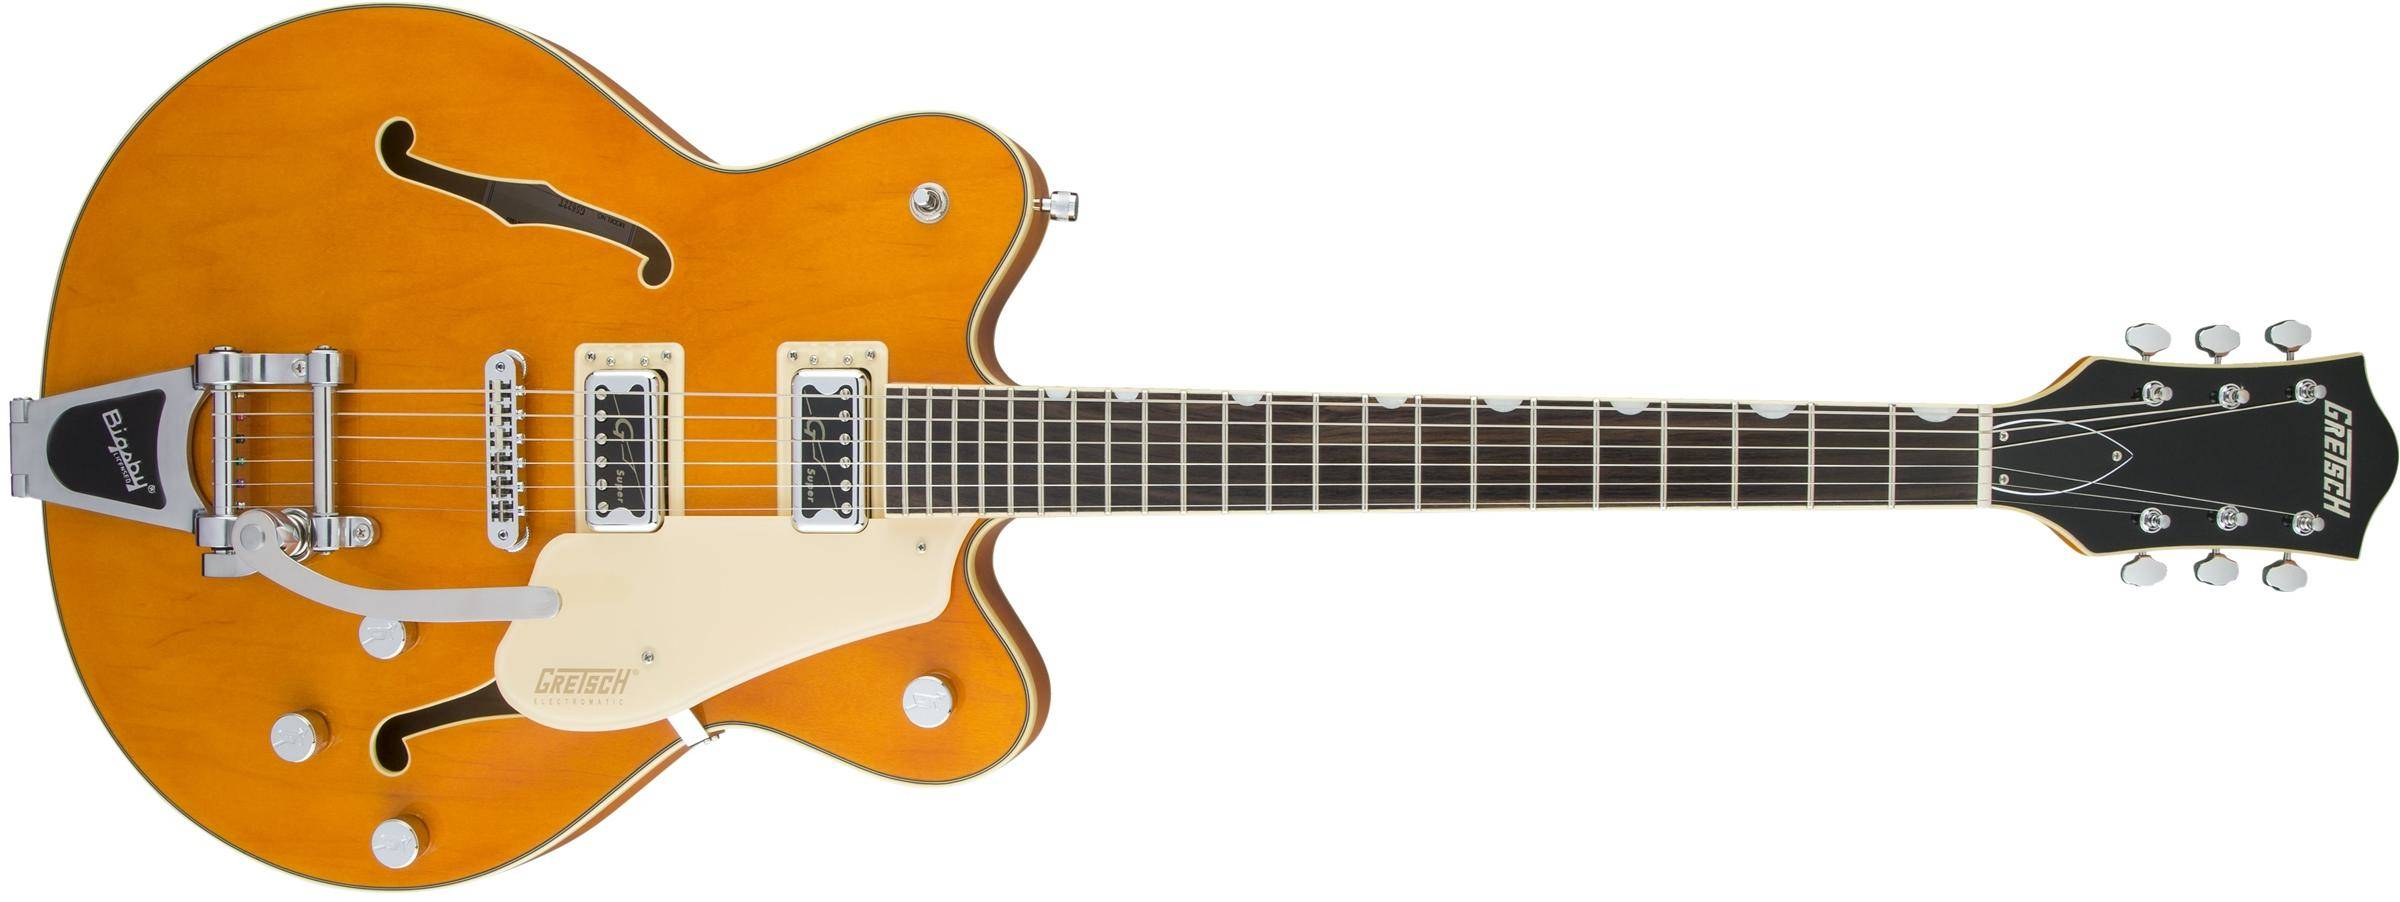 GRETSCH G5622T Electromatic Center Block - Double-Cut with Bigsby RW Vintage Orange 2509300520